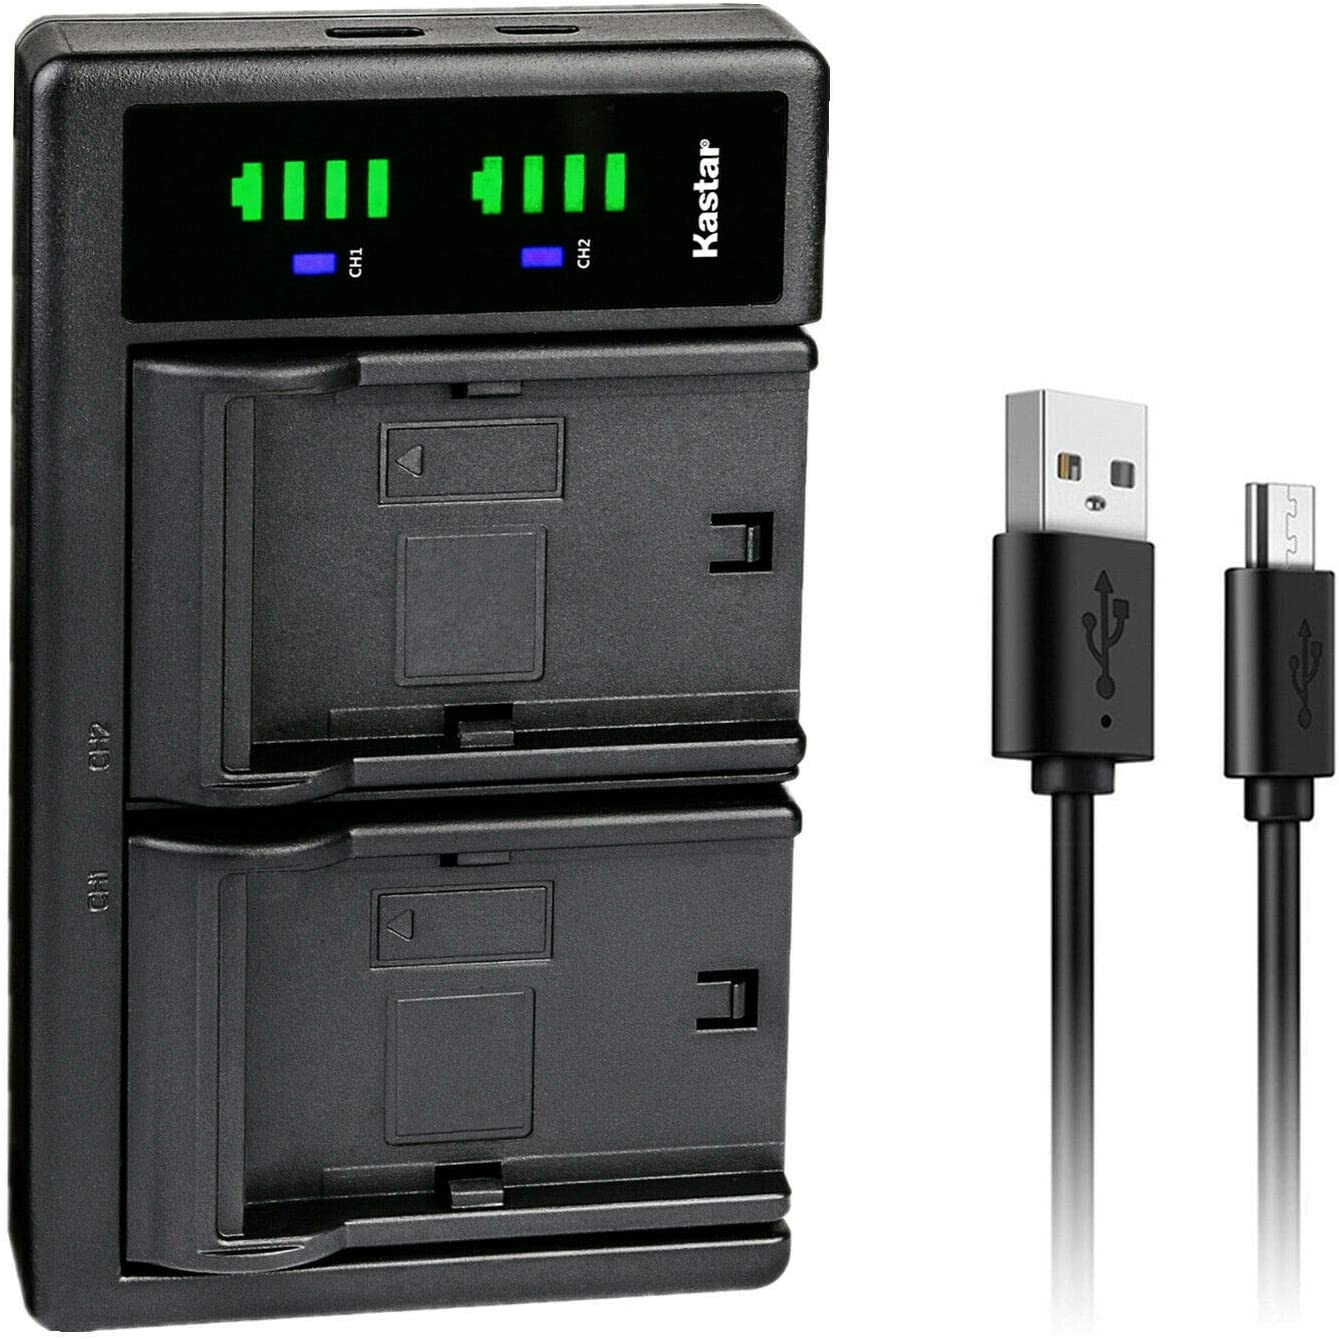 Kastar LTD2 USB Battery Charger Outstanding store LP-E10 LPE Replacement Canon for